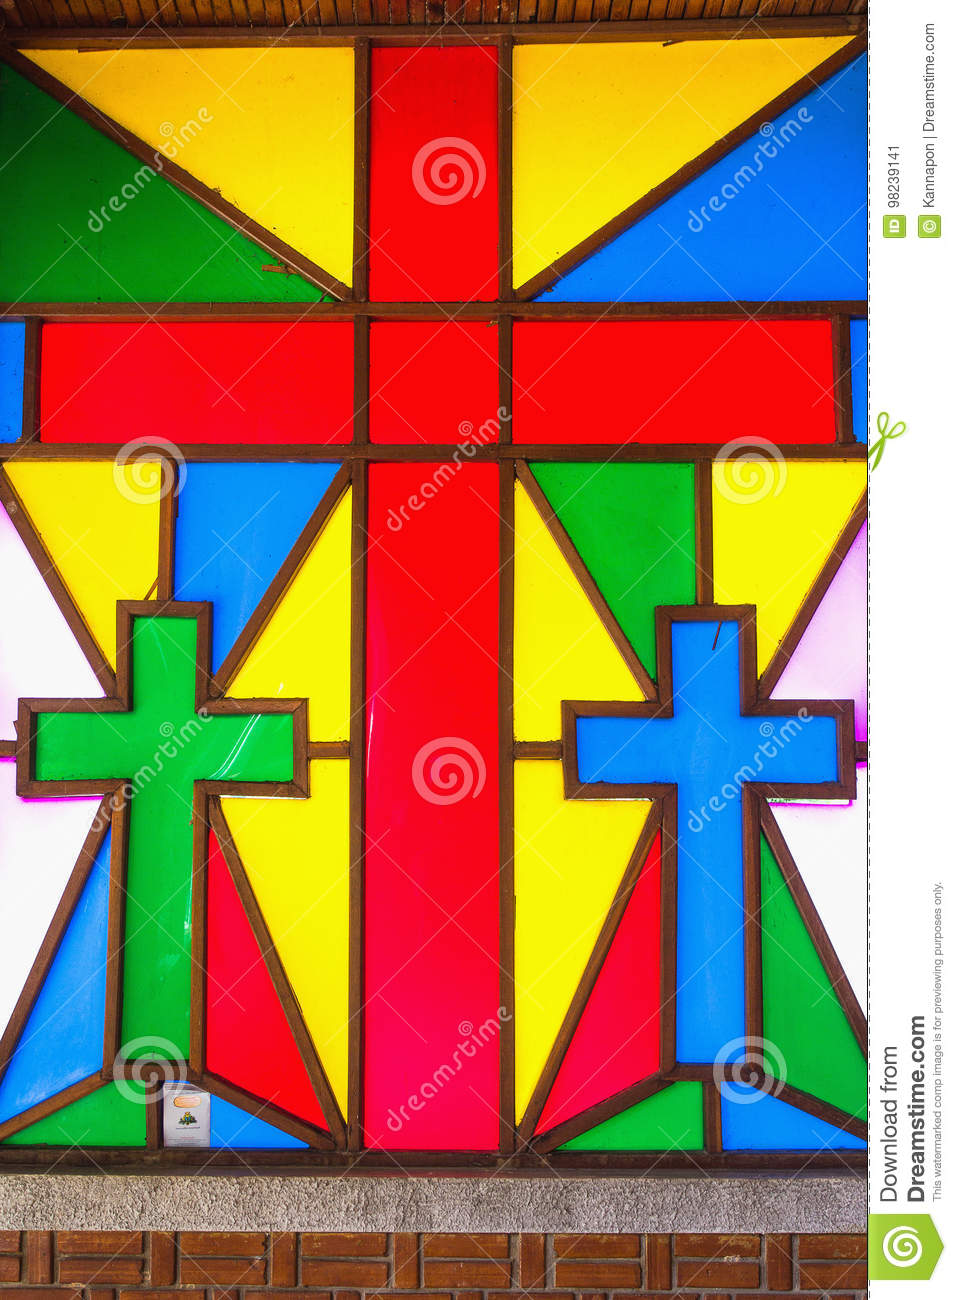 Stained glass in churches.